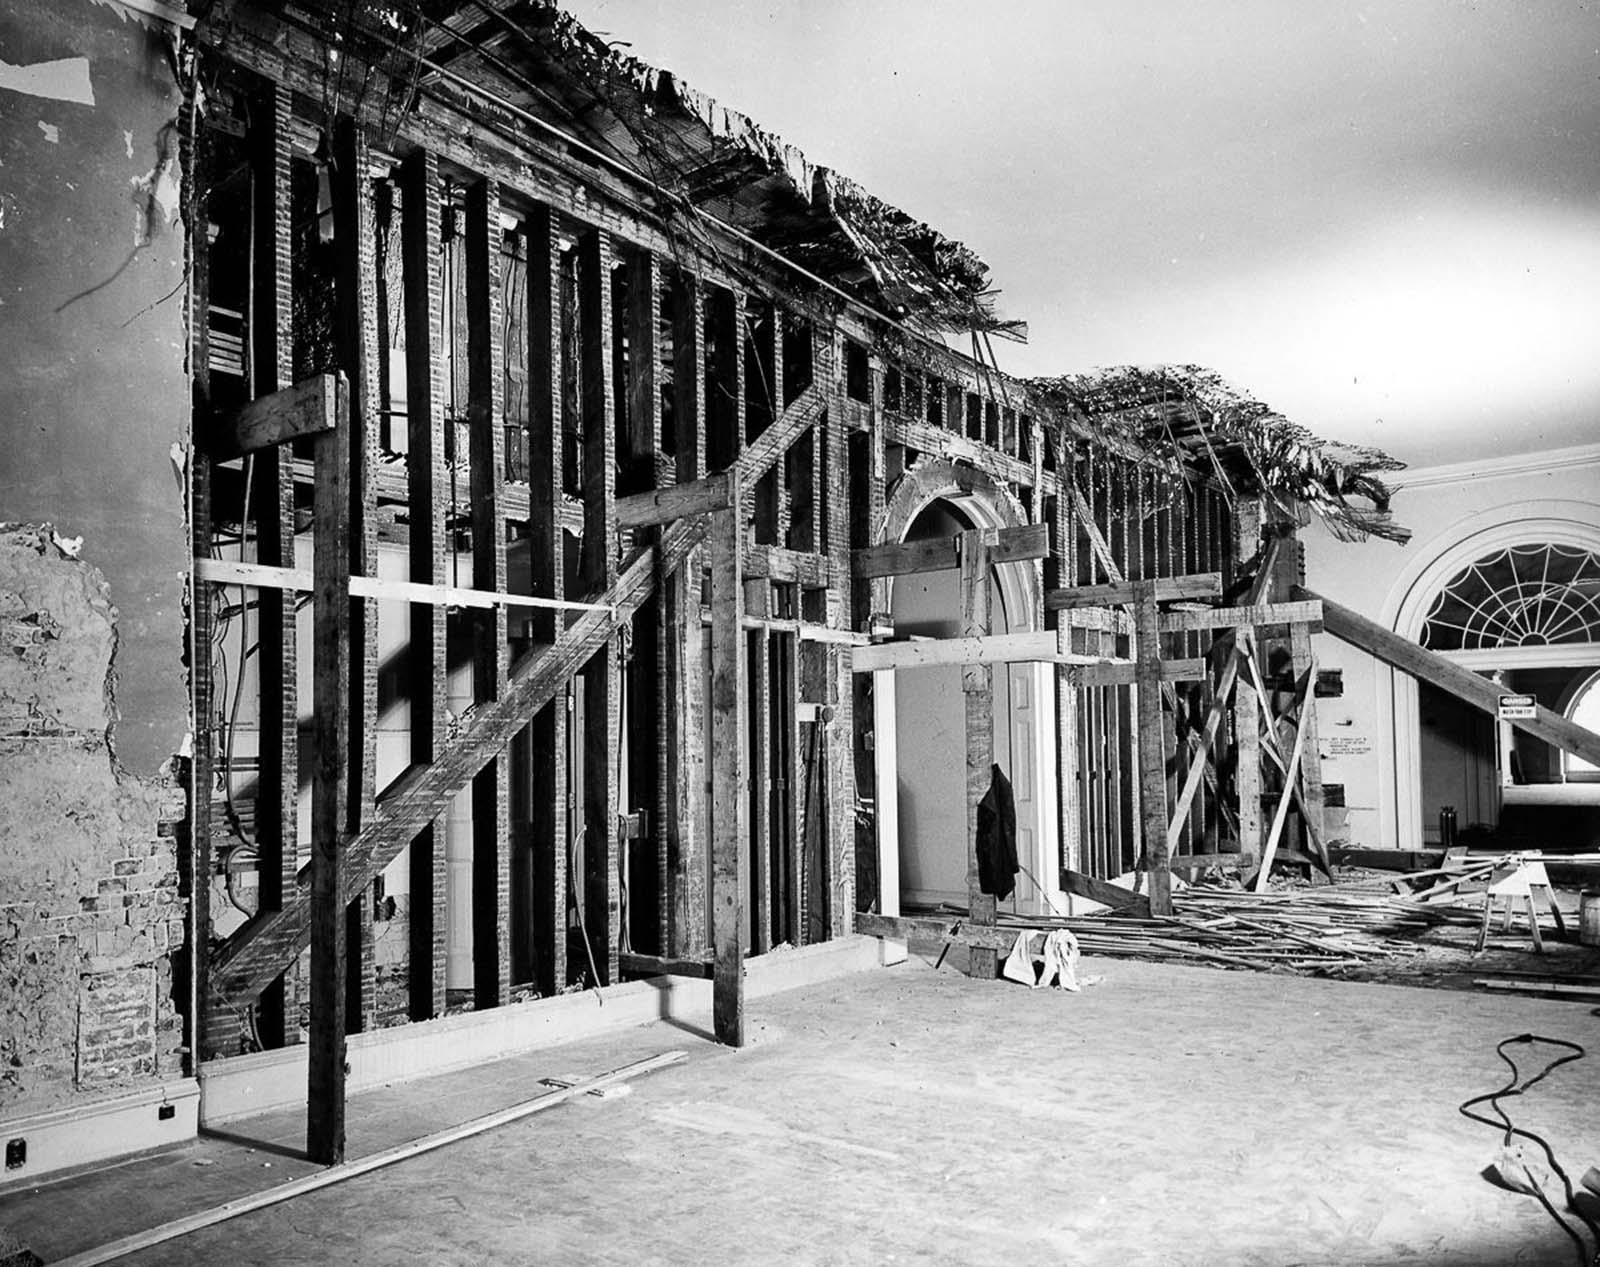 Renovation wWork on the White House, c. 1950.